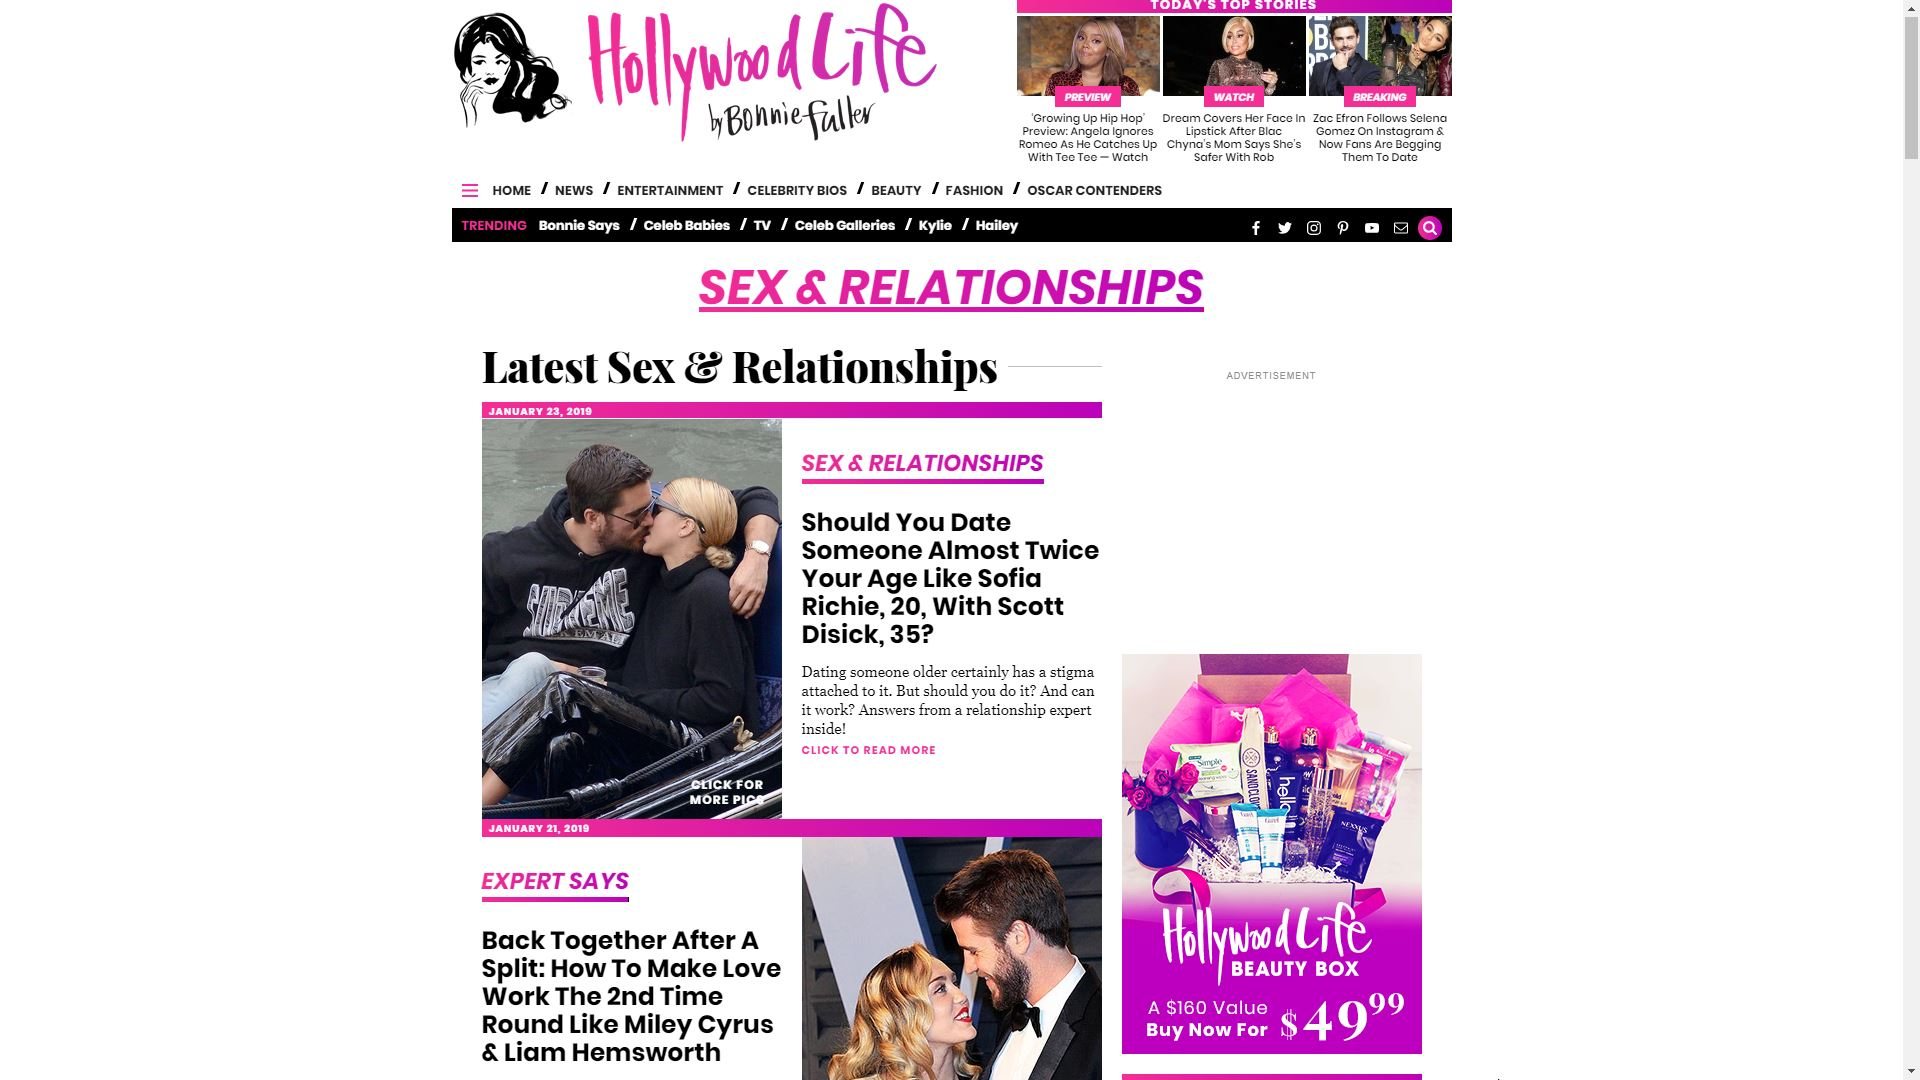 Hollywood Life Sex and Relationship